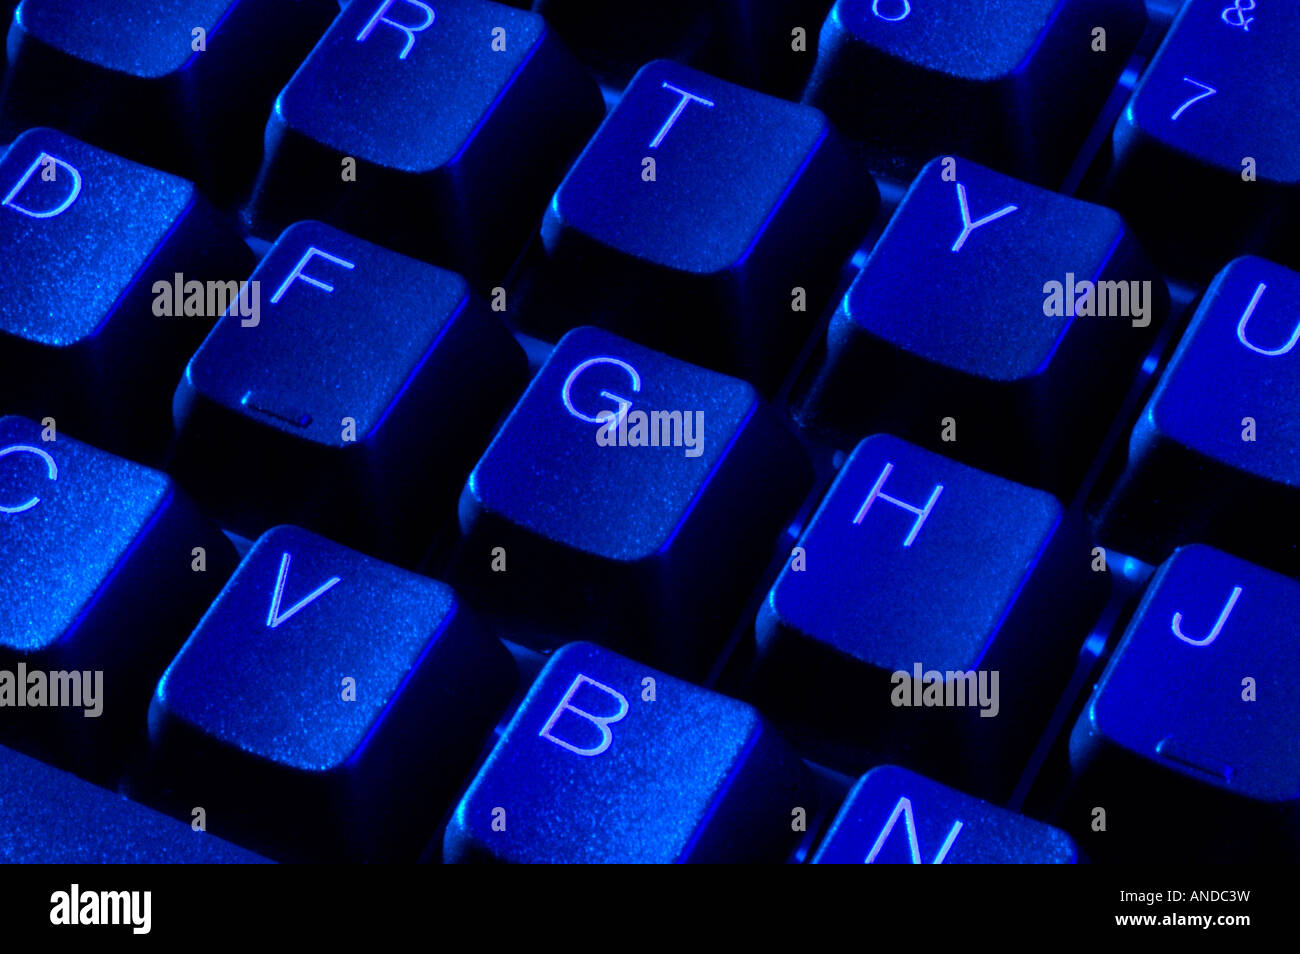 Blue computer keyboard with alphanumerical qwerty keys - Stock Image